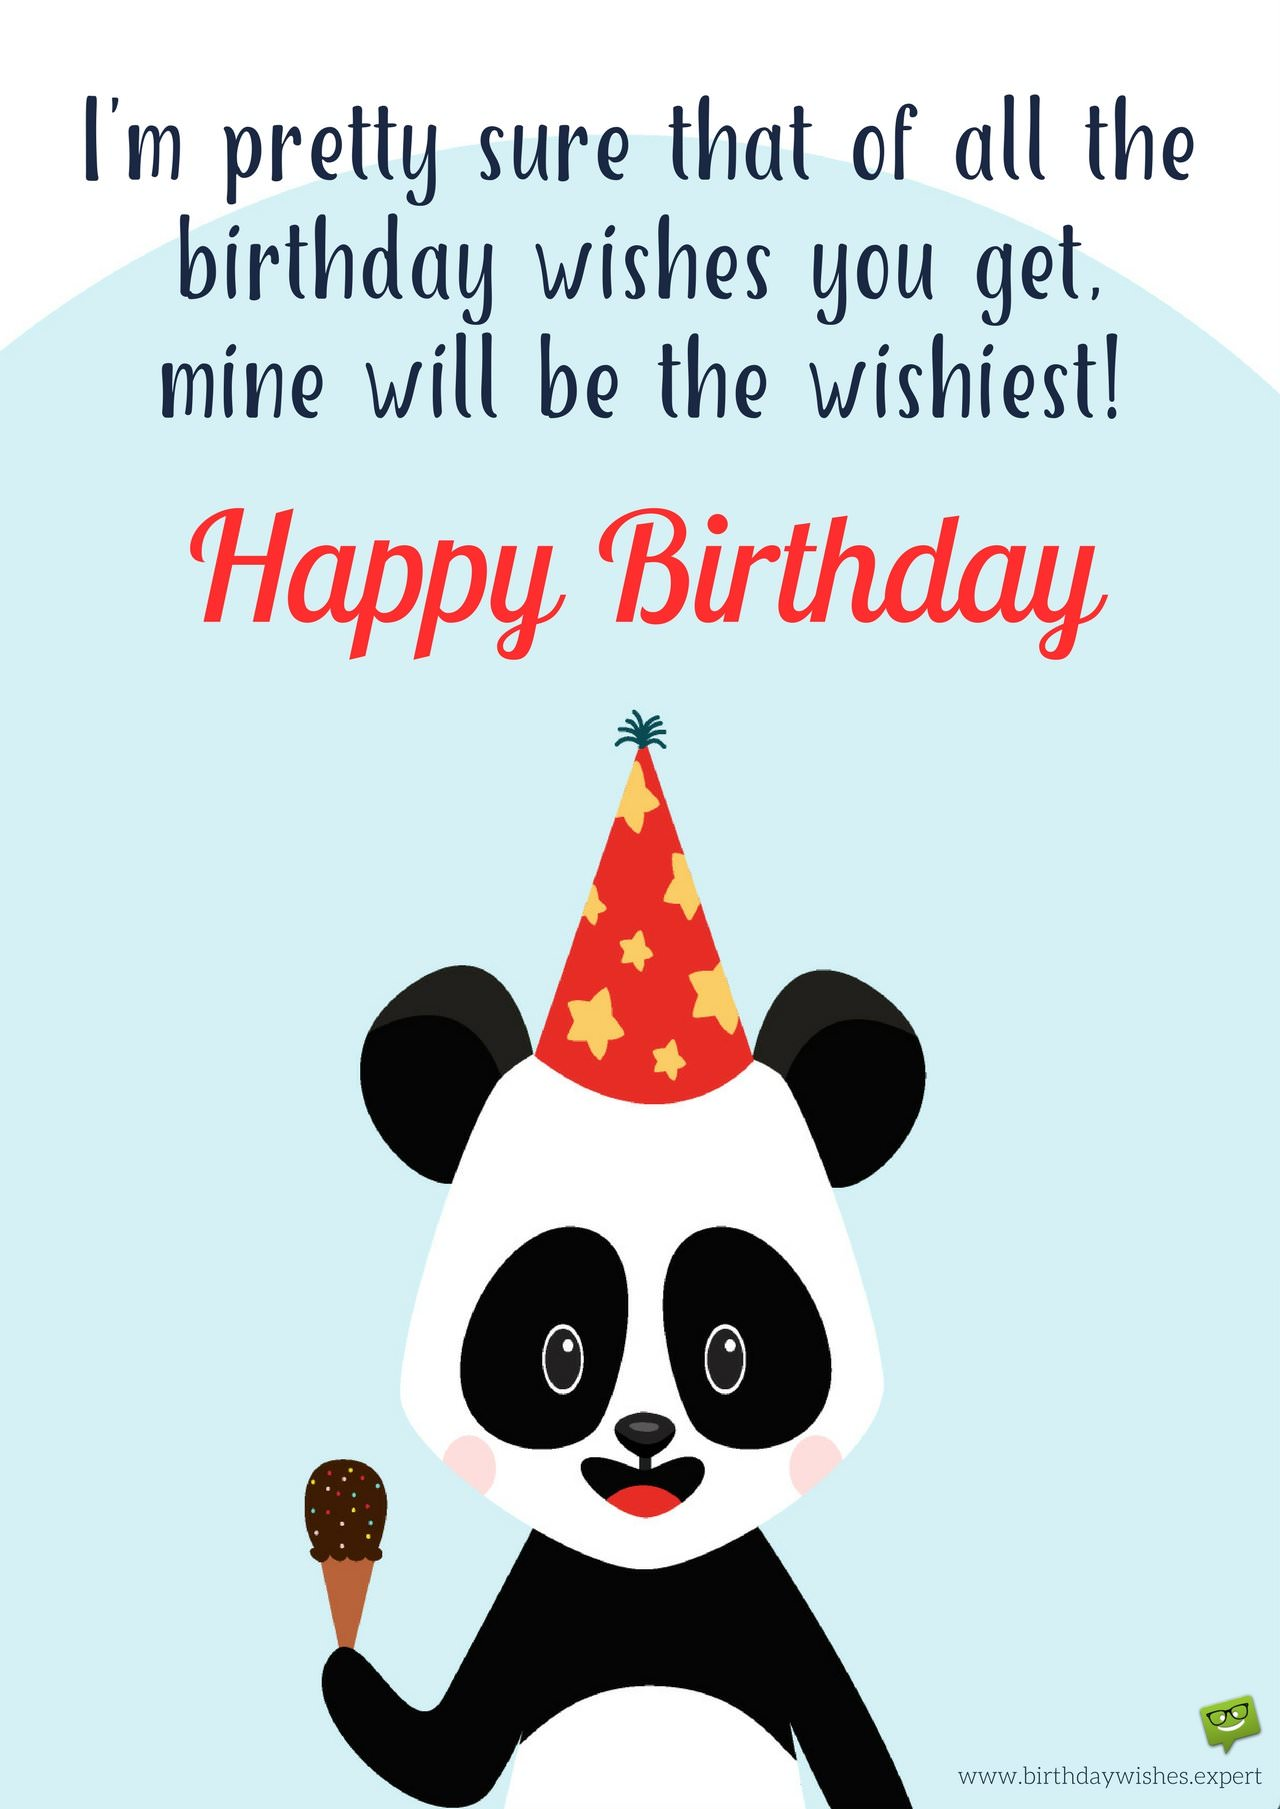 a funny birthday picture ; Funny-birthday-wish-on-image-of-a-cute-panda-animal